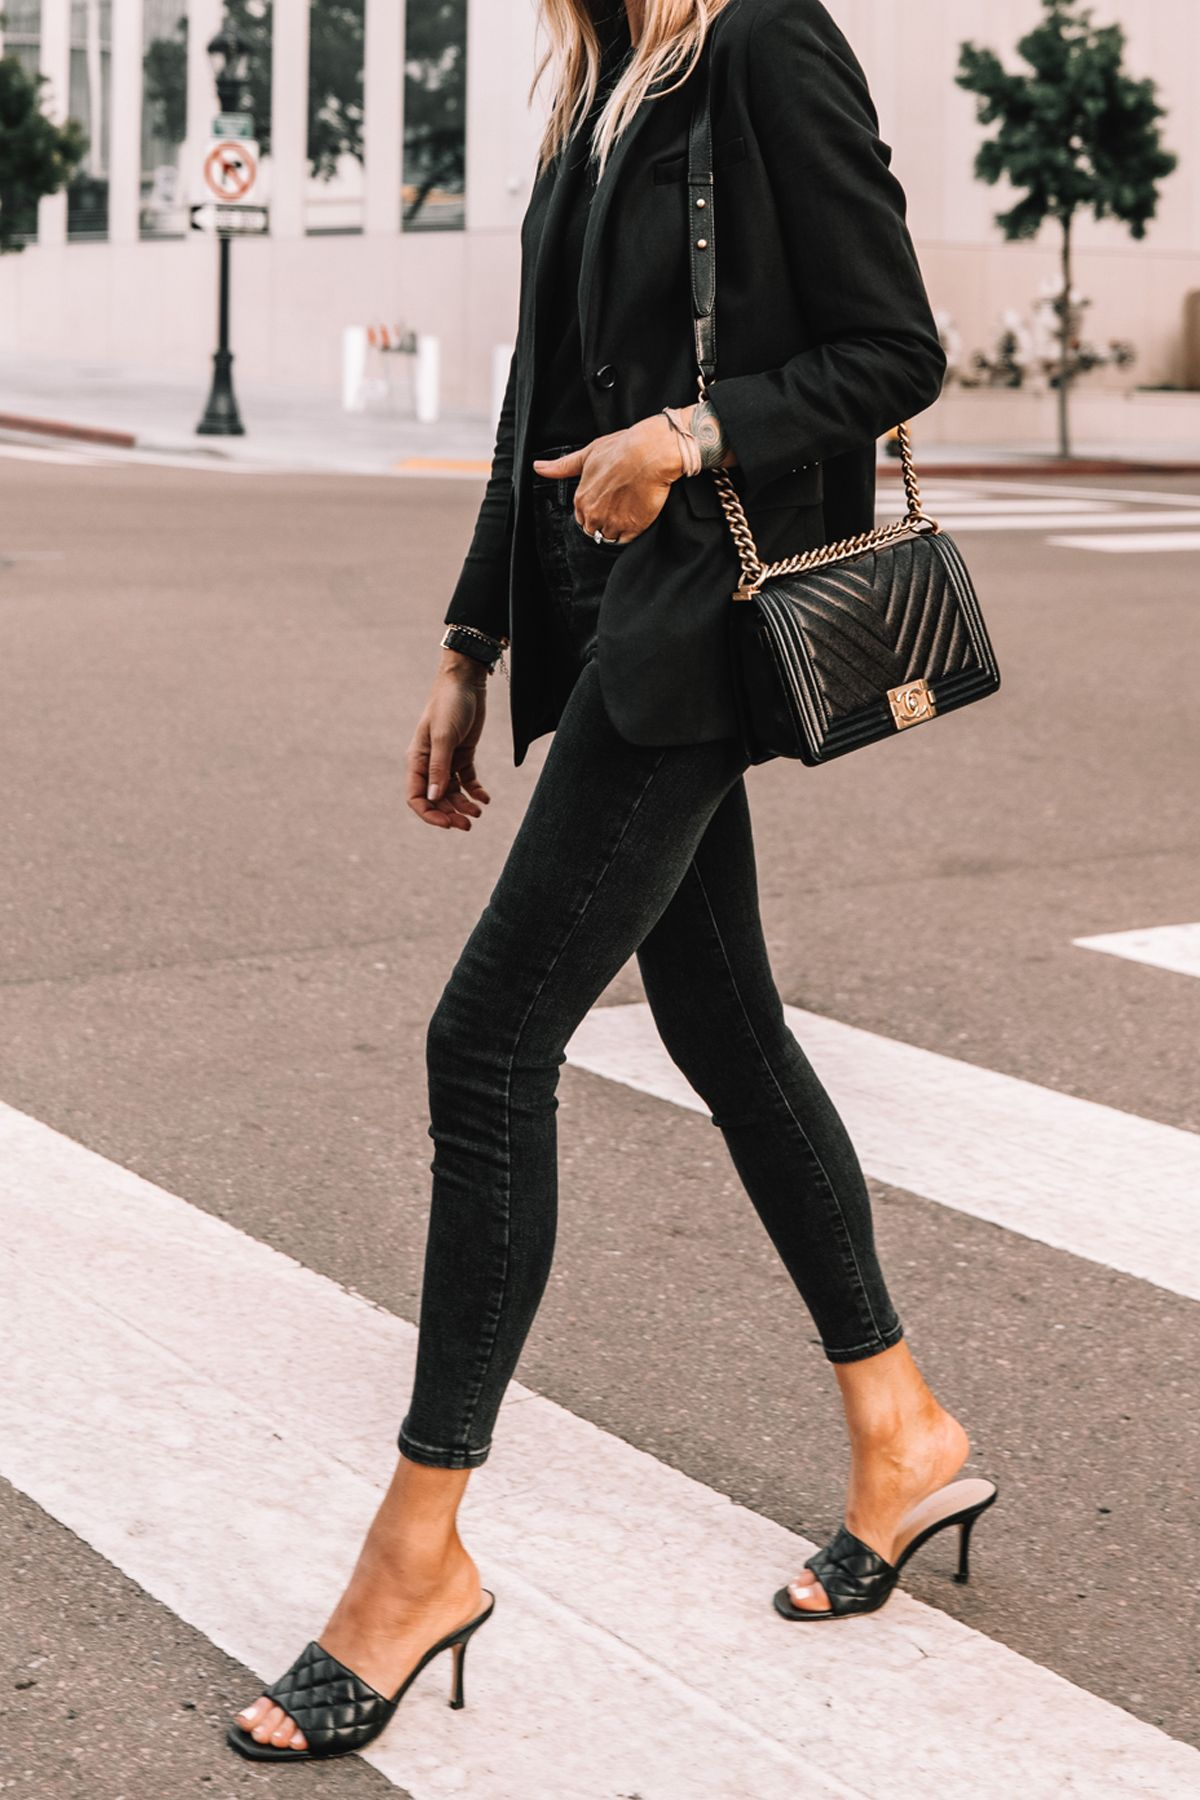 All-Black Everlane Outfit | Cotton-Linen Boyfriend Blazer + High Rise Skinnies | Fashion Jackson -   23 fall outfits 2020 for black women ideas